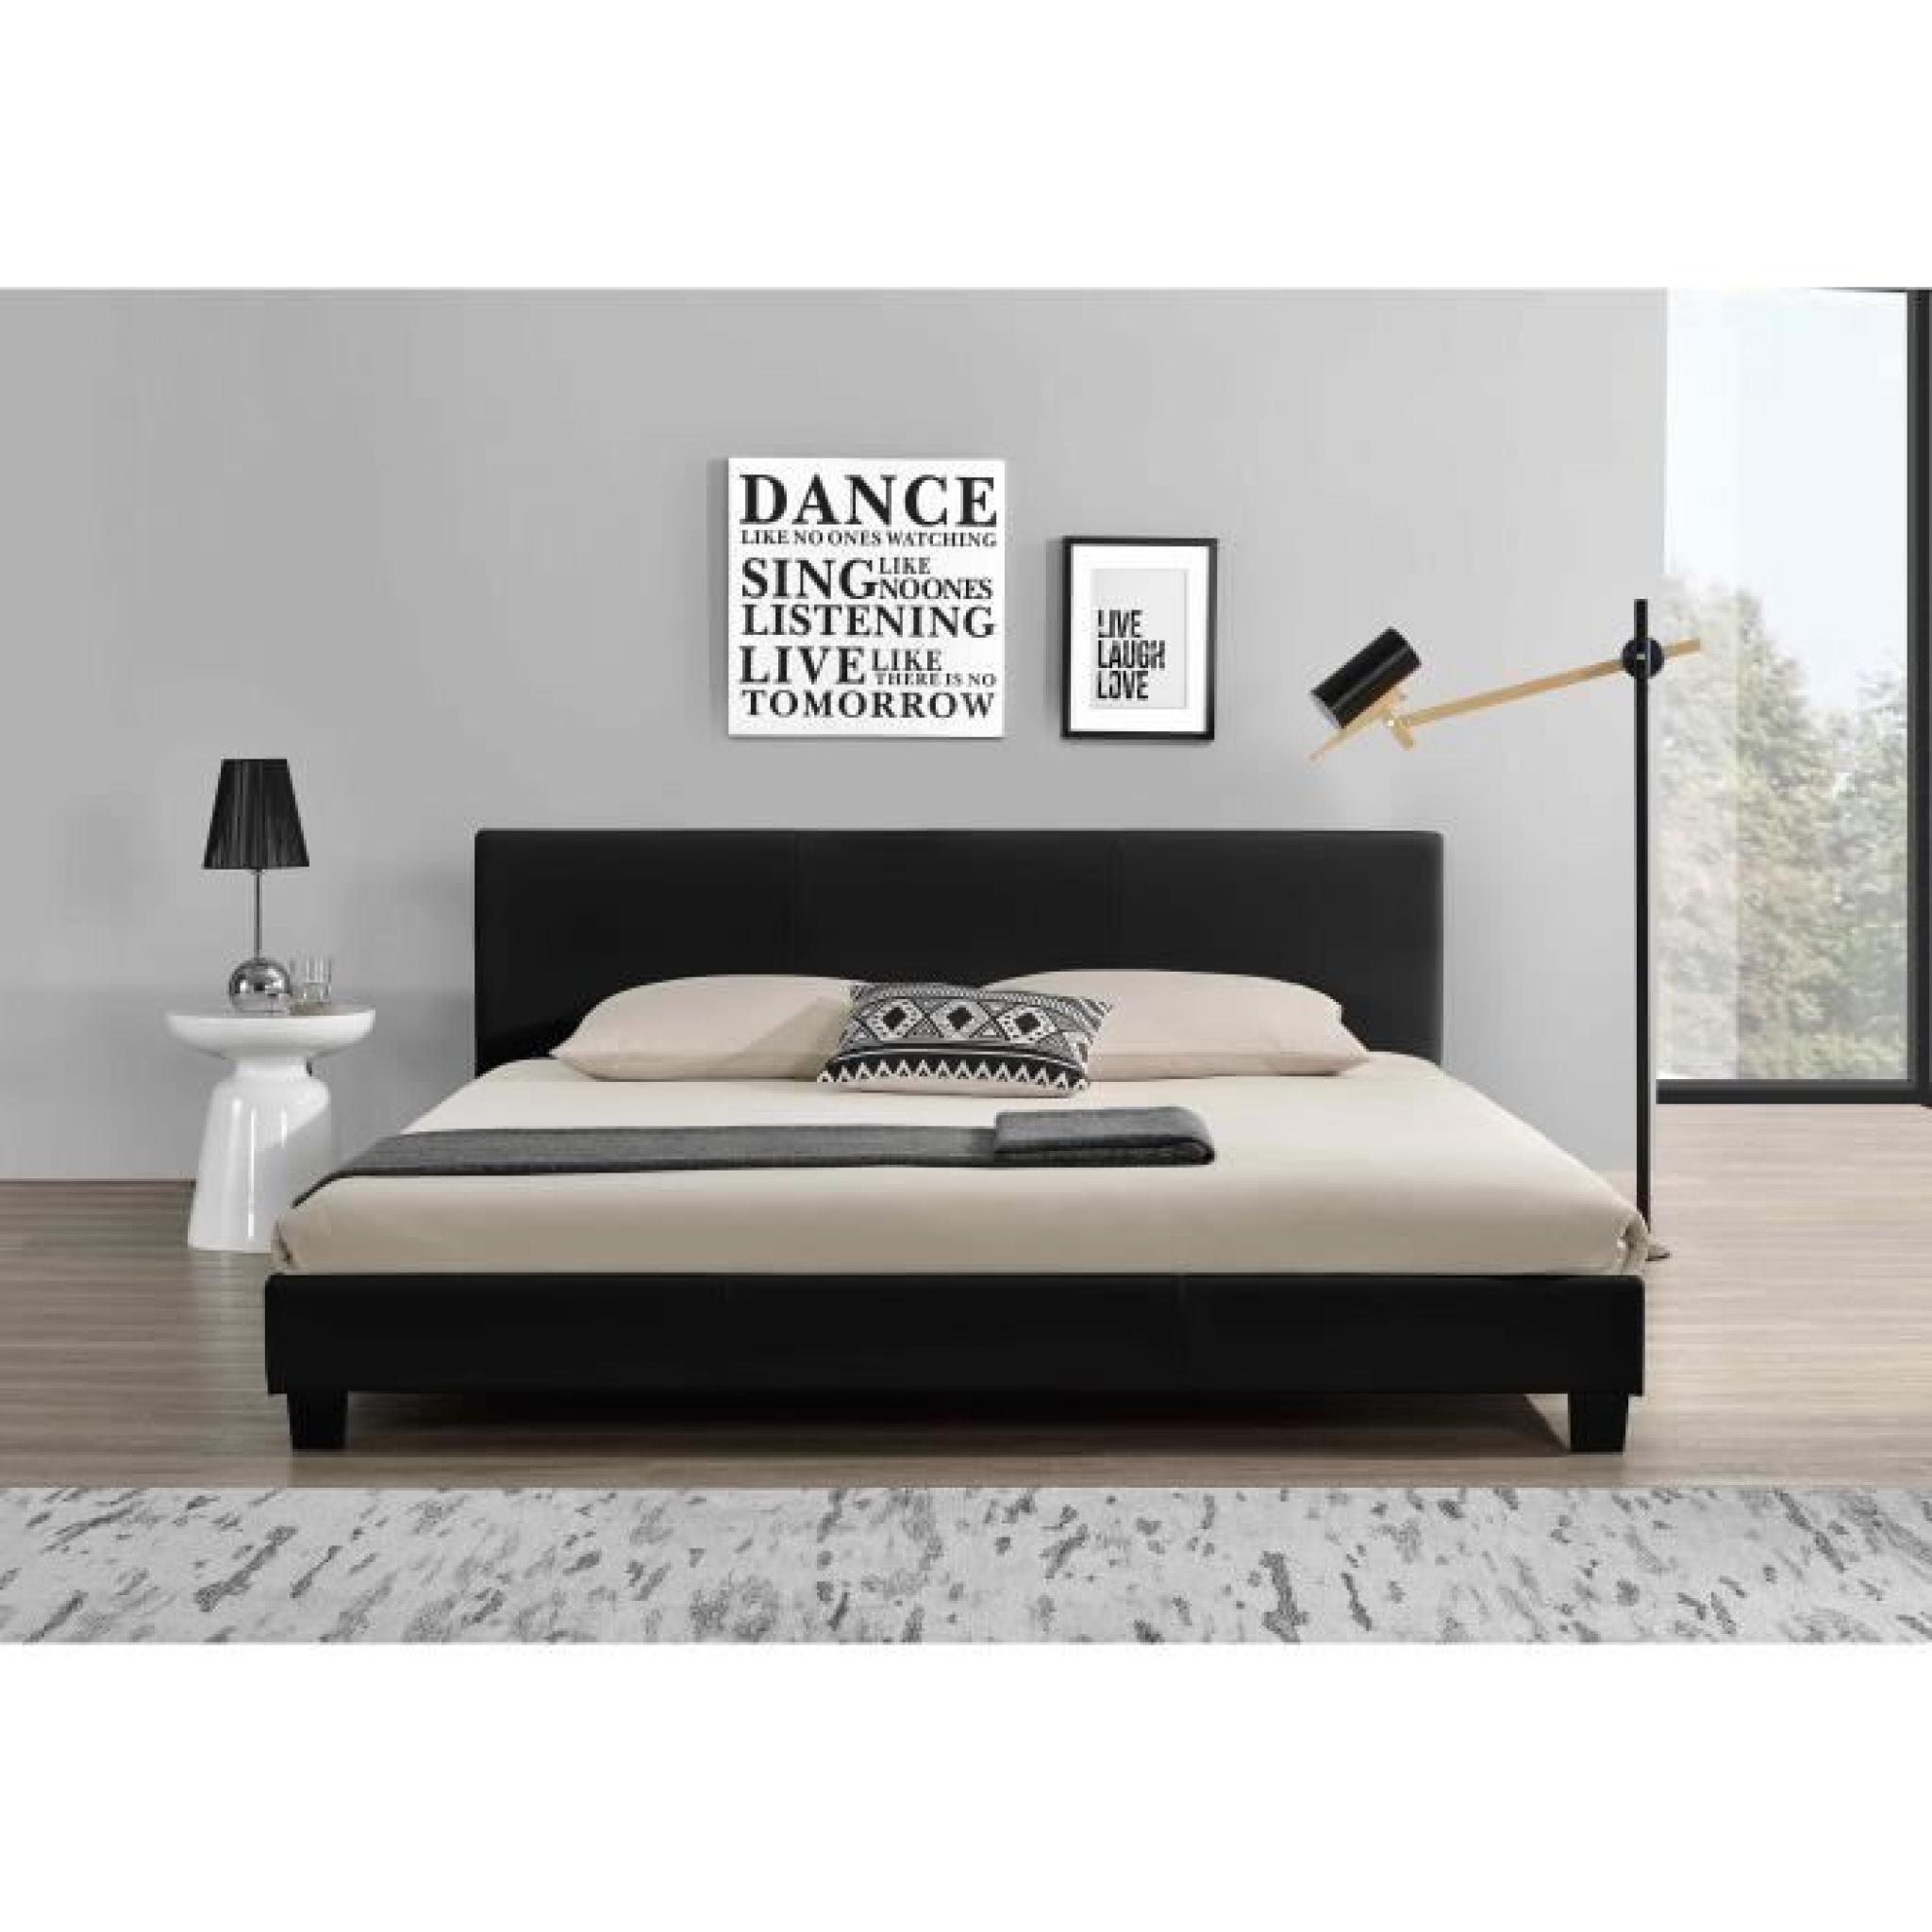 lit contemporain 180x200 noir structure lit t te de lit simili cuir achat vente lit pas cher. Black Bedroom Furniture Sets. Home Design Ideas